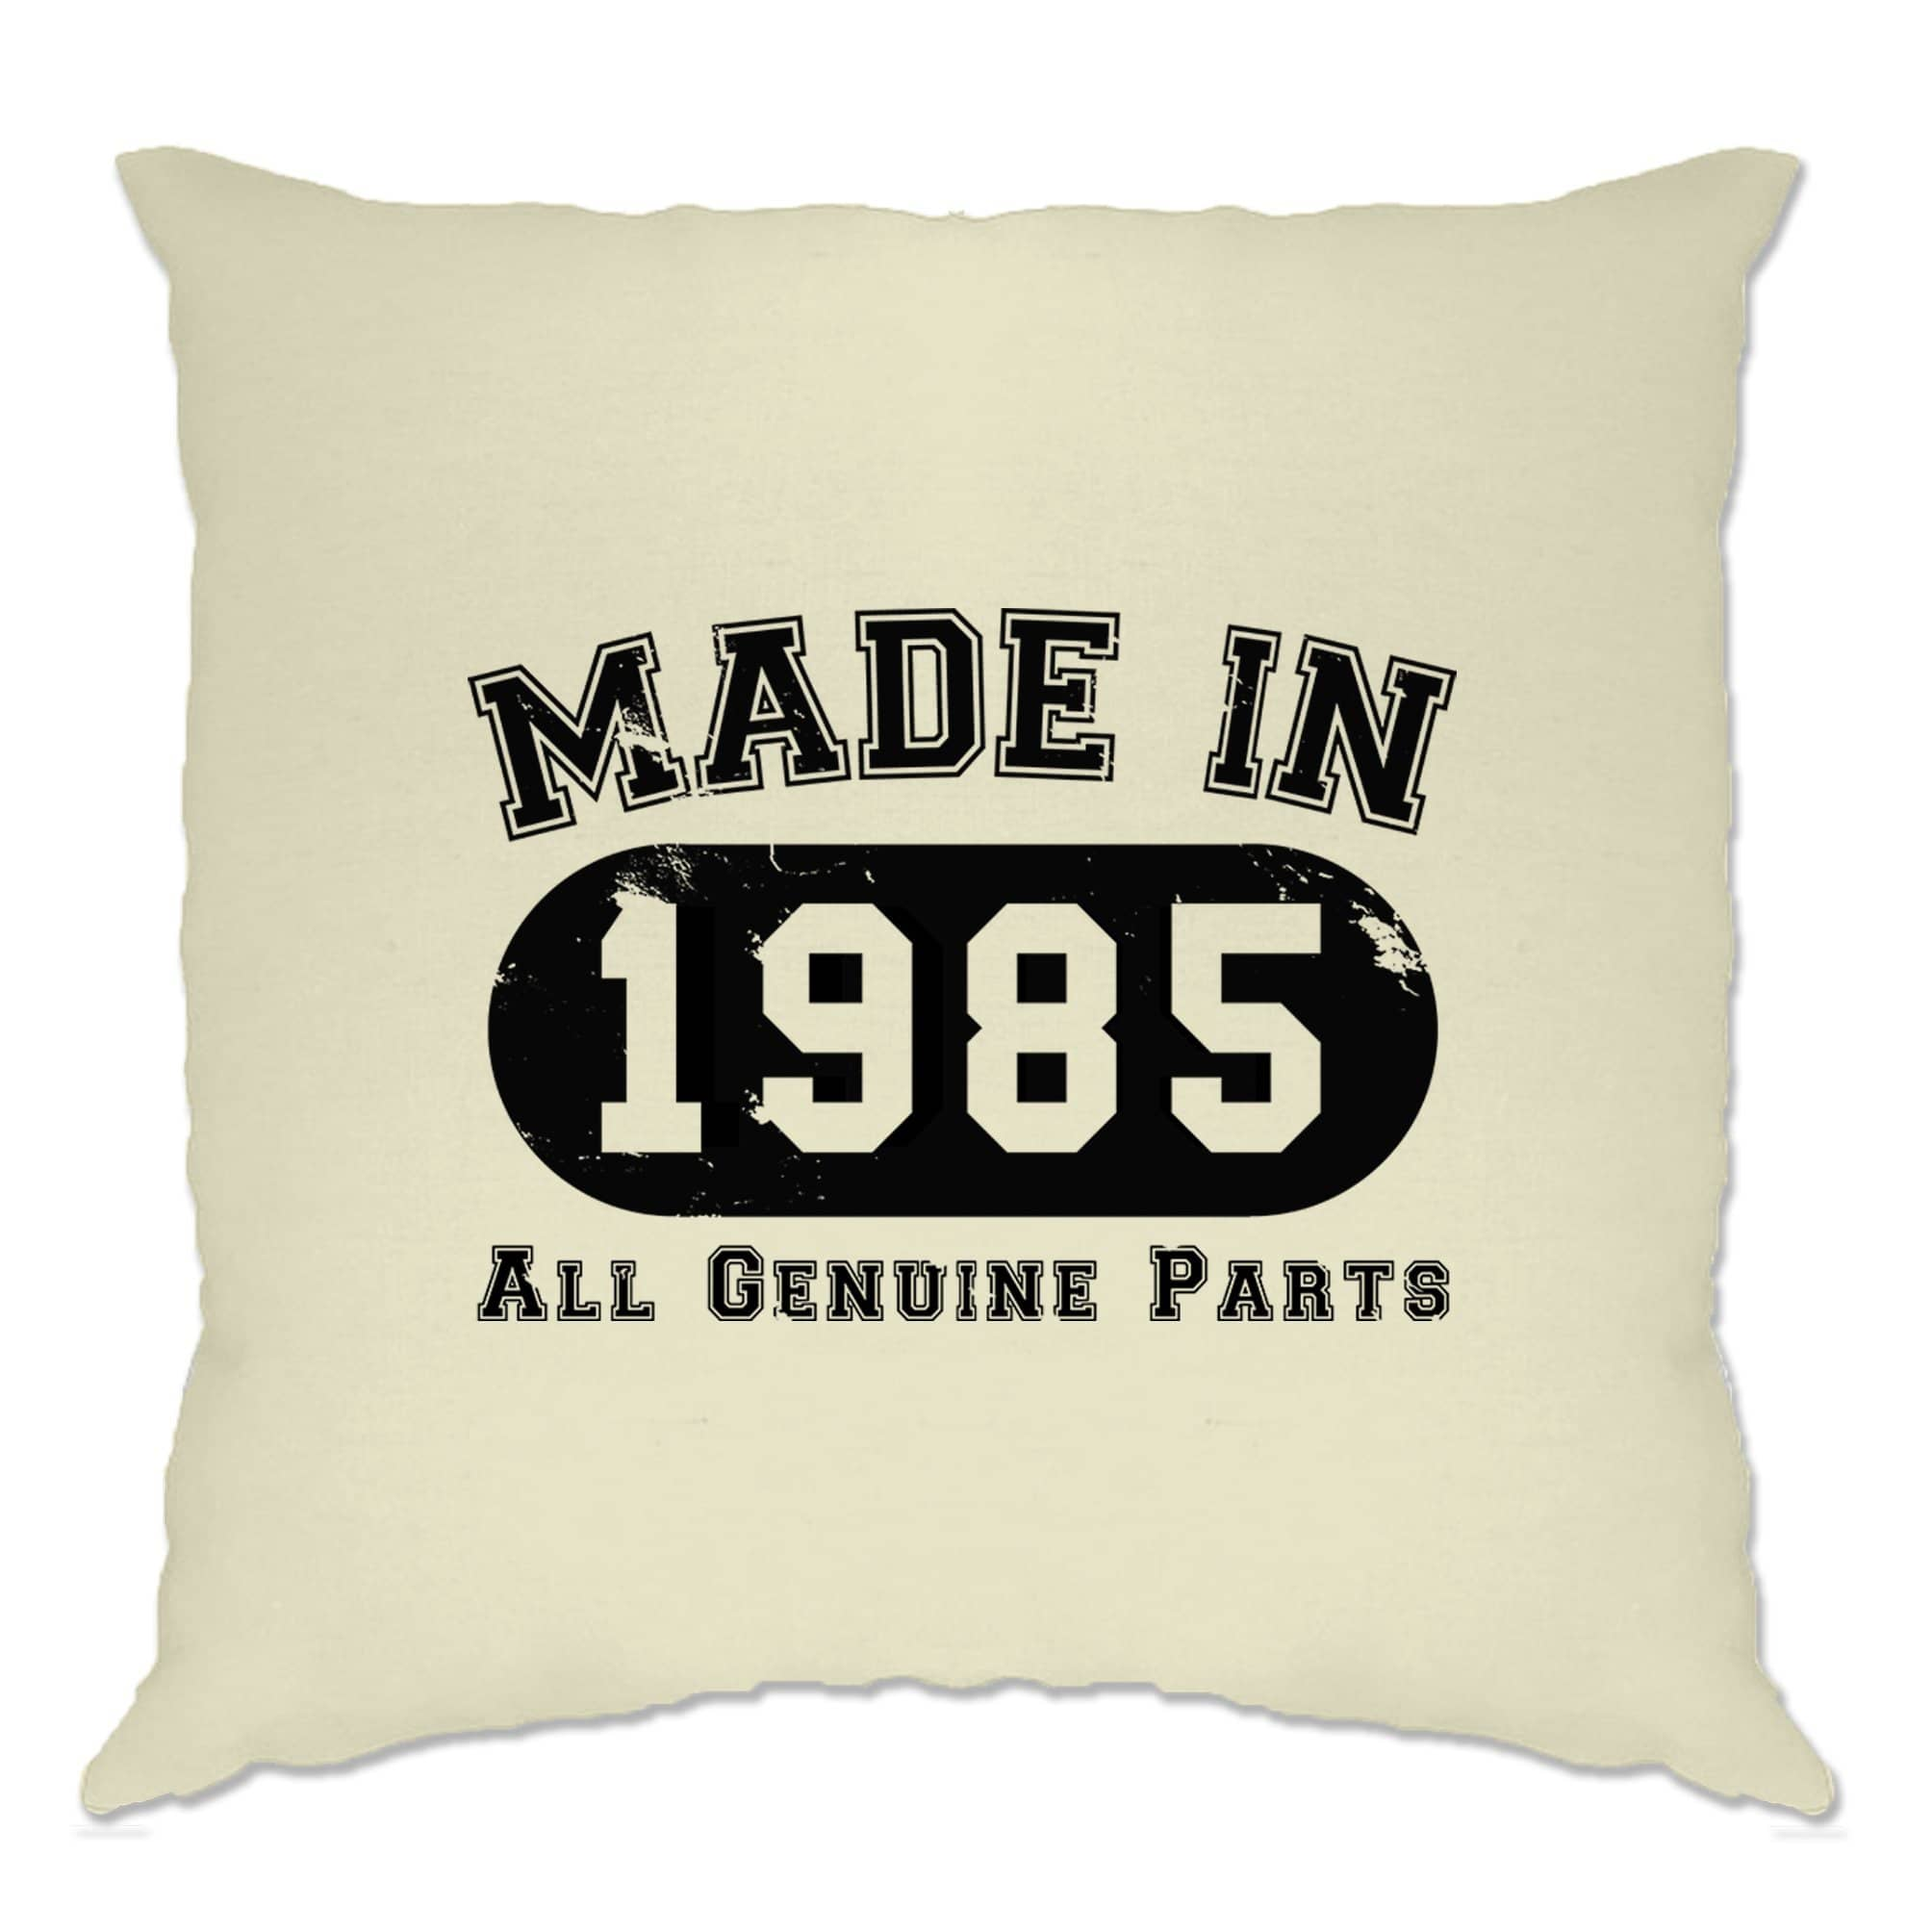 Birthday Cushion Cover Made in 1985 All Genuine Parts